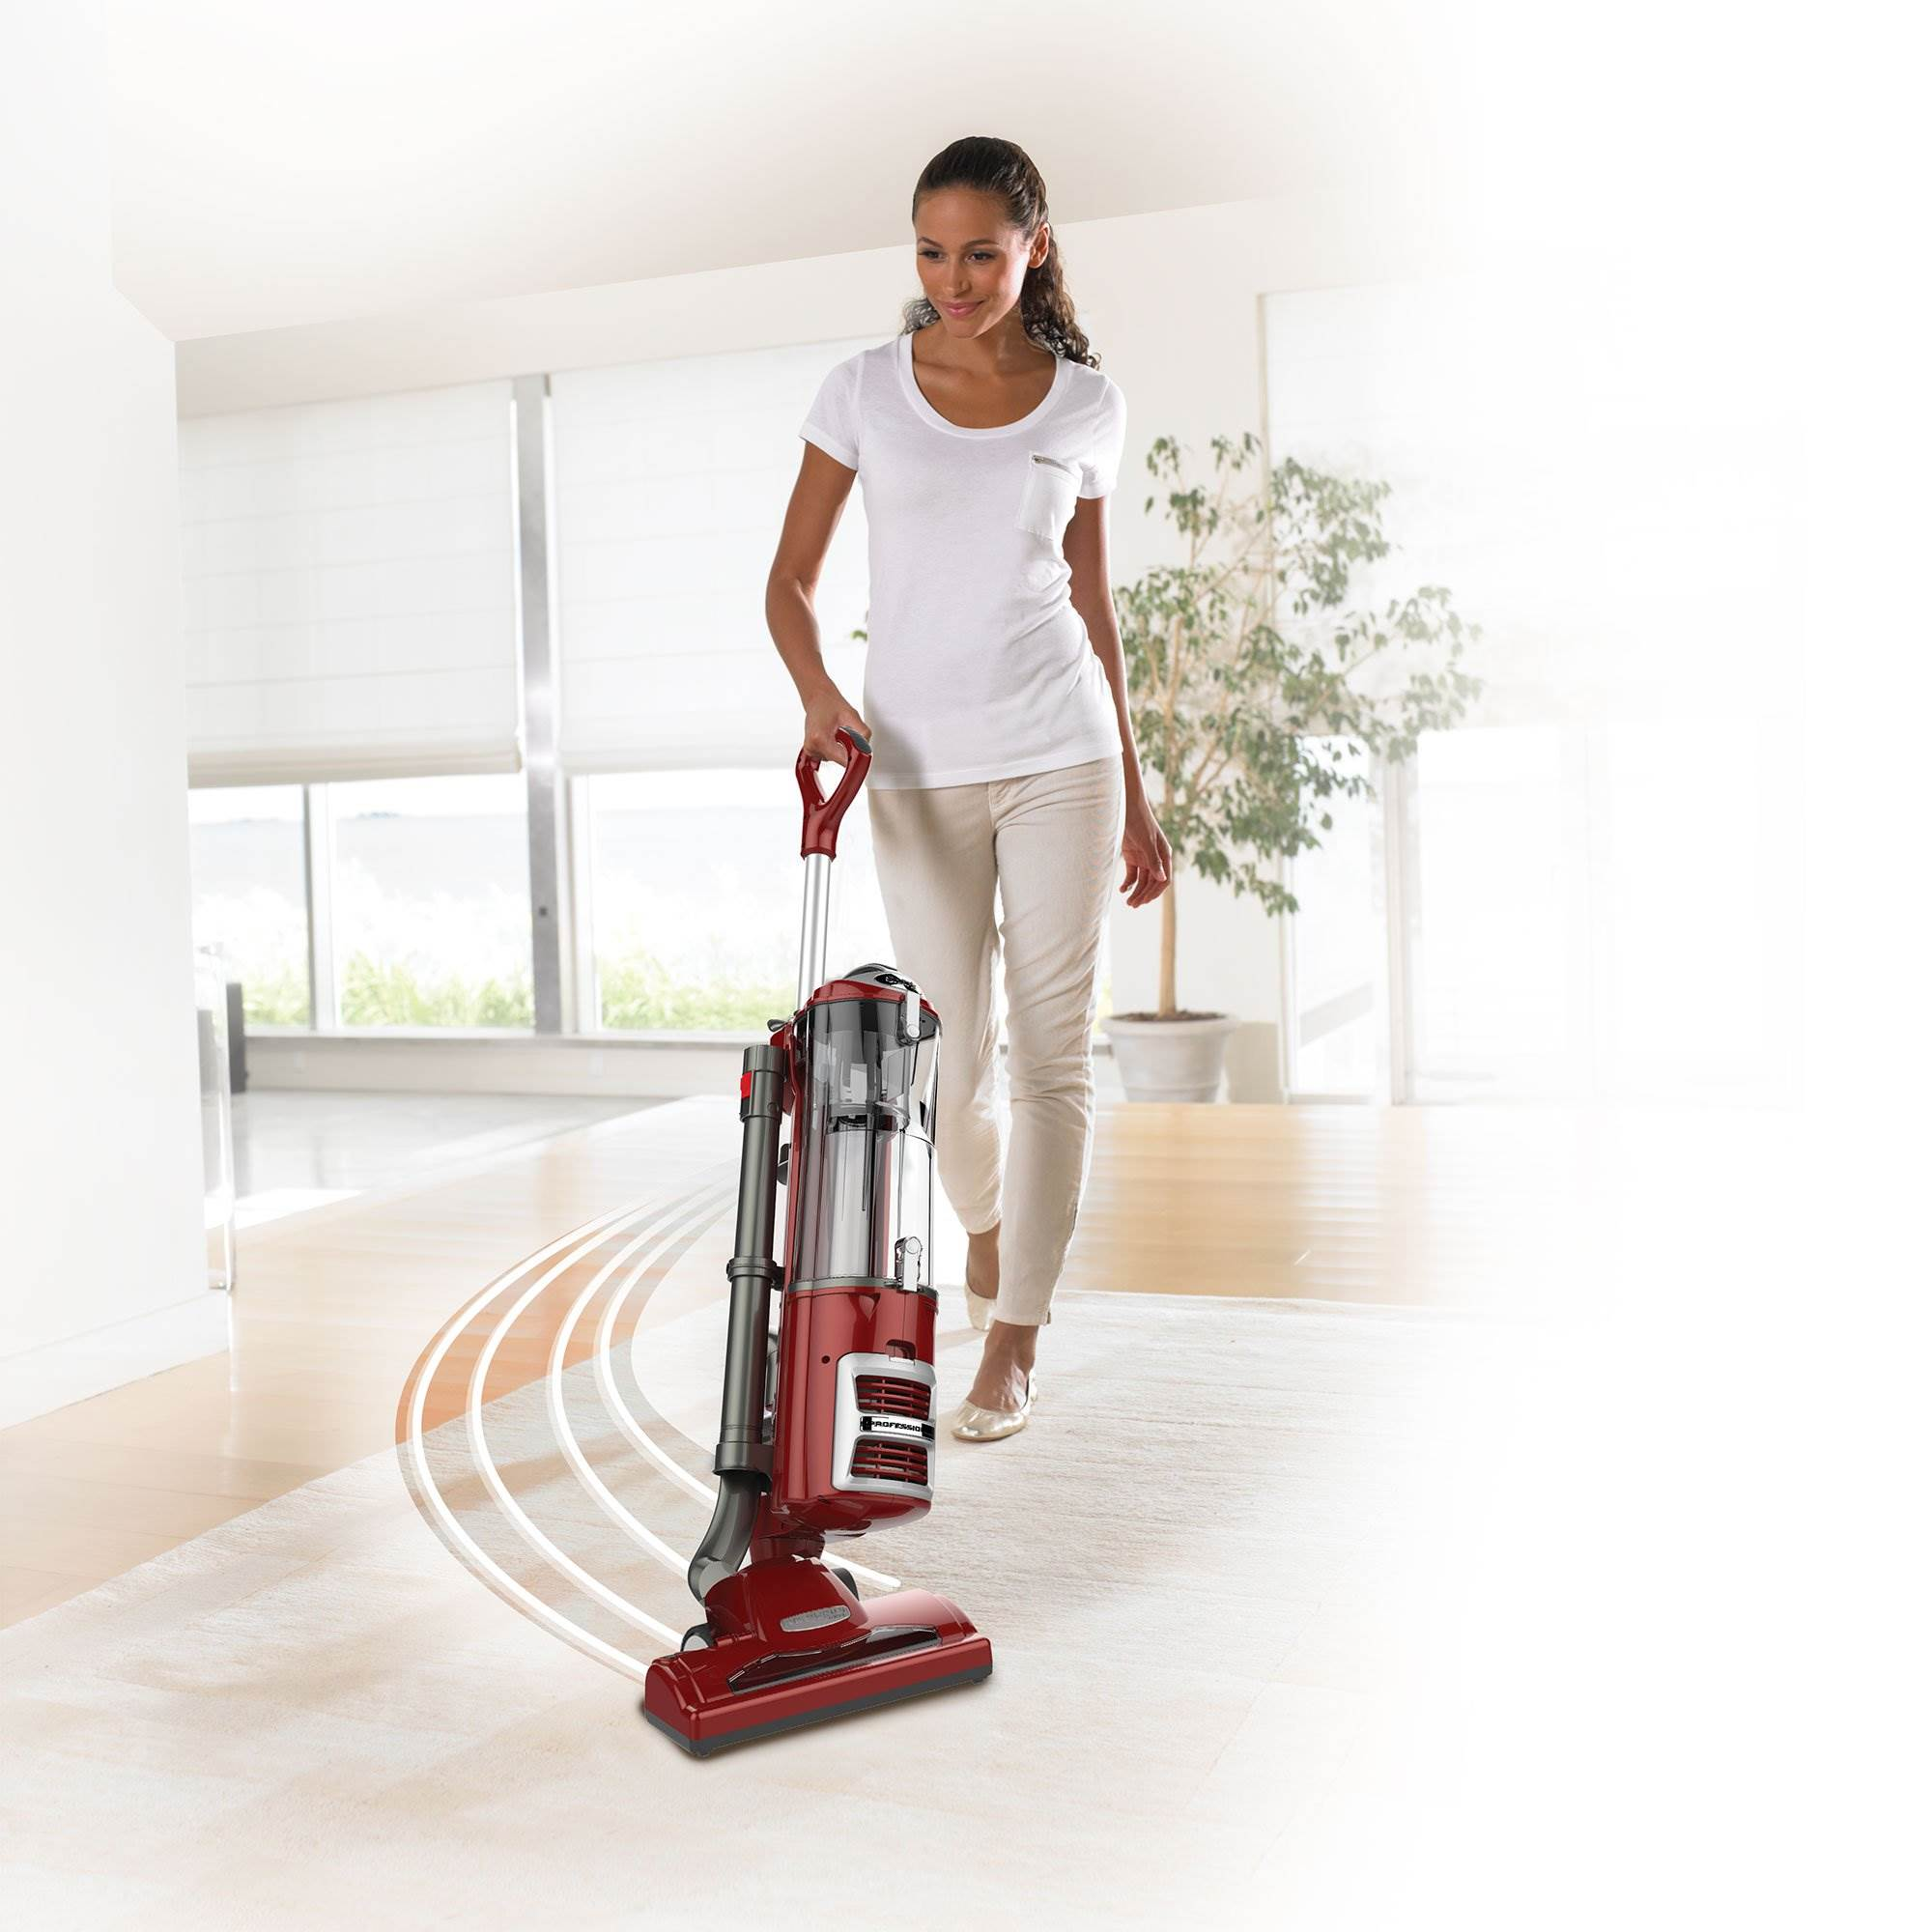 Red Shark Navigator Professional Upright Vacuum Cleaner Certified Refurbished